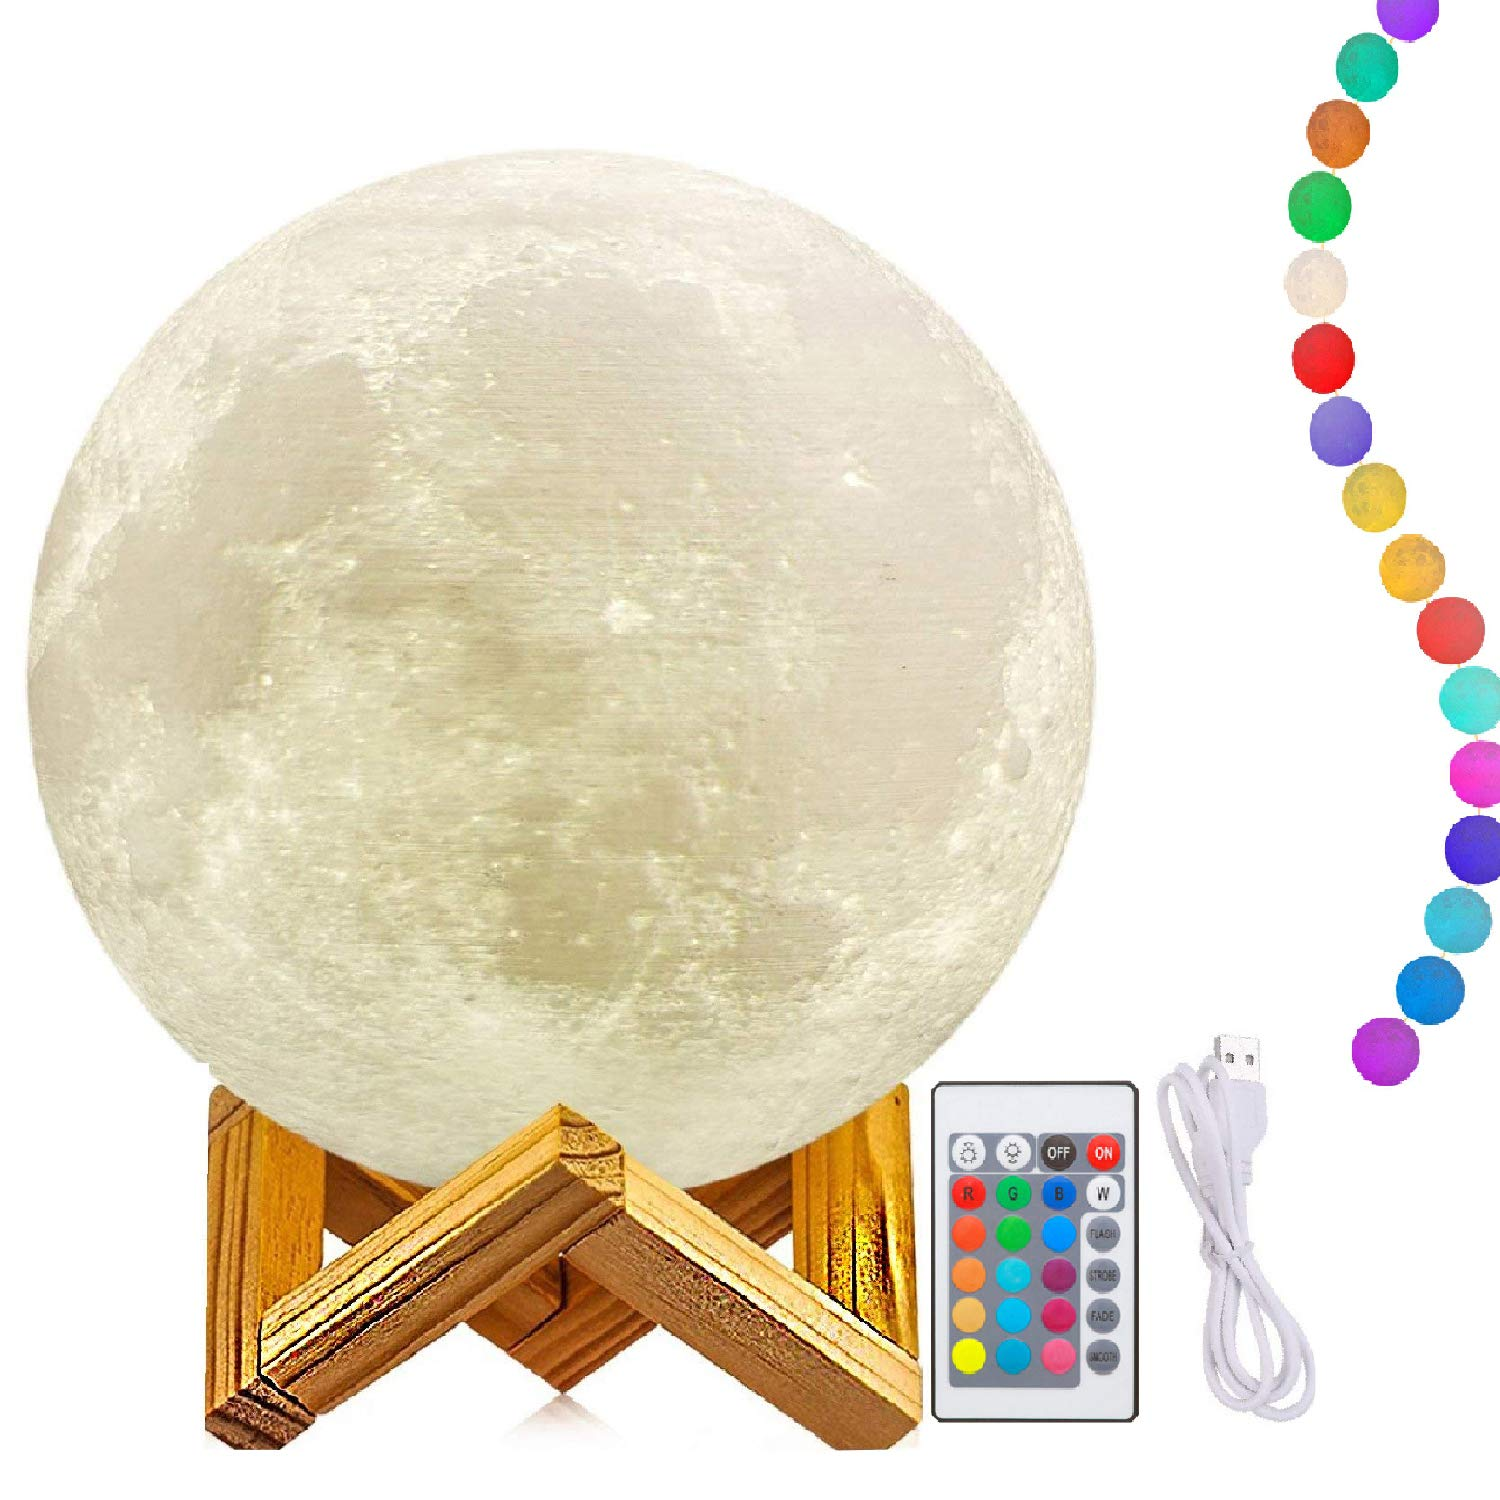 12 Inch Moon Lamp with Stand, 3D Printing Moon Light, The Moon Night Light with LED 16 Colors, Touch Control and Remote Control (Diameter31CM)